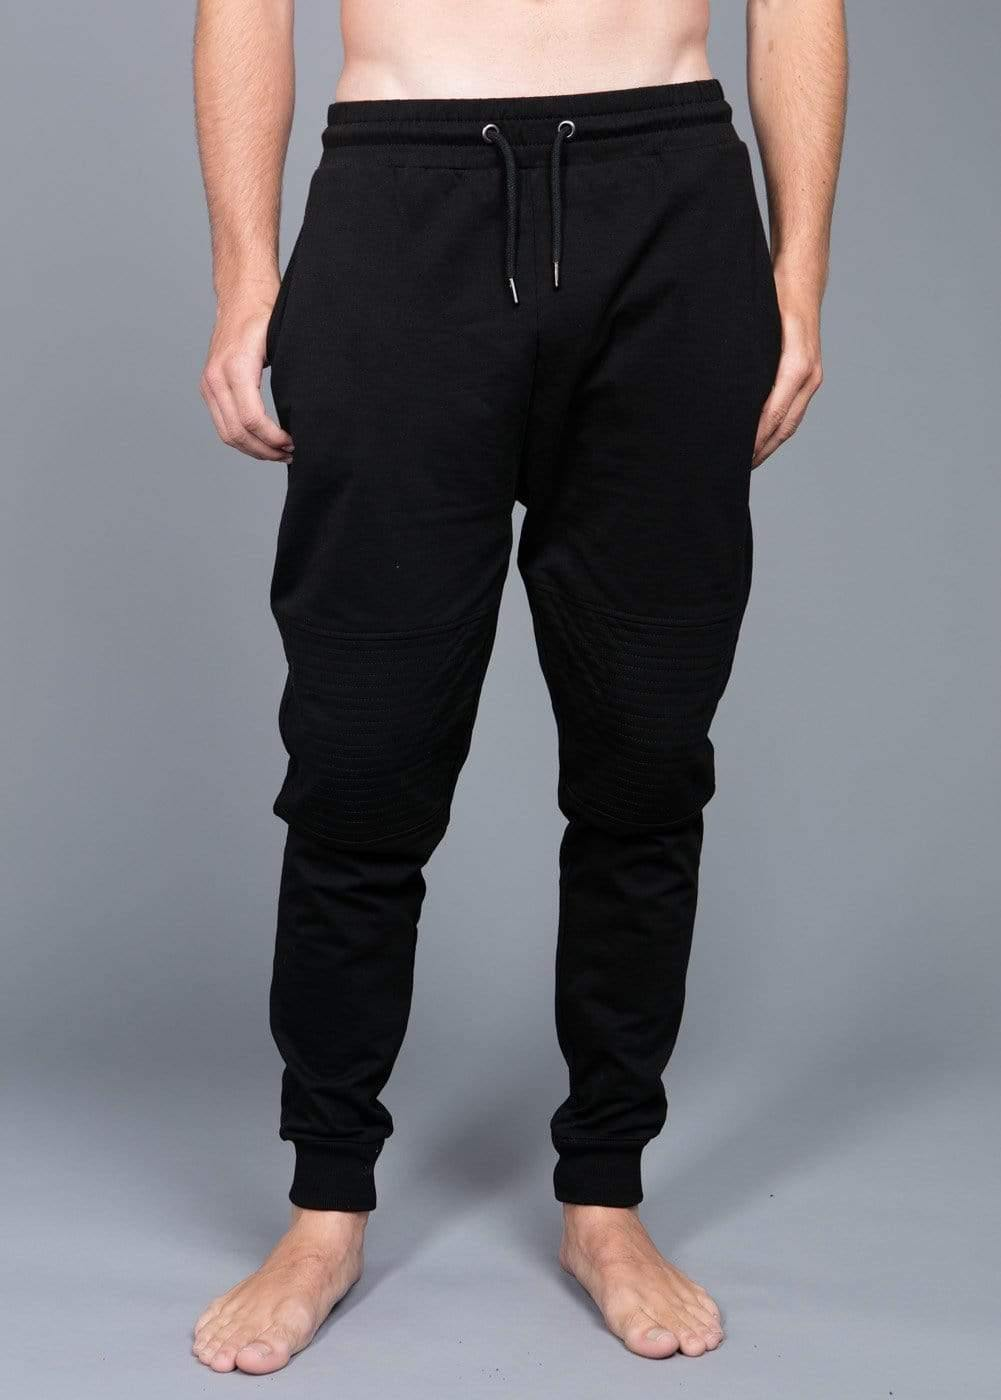 TeenzShop Youth Boys Biker Joggers